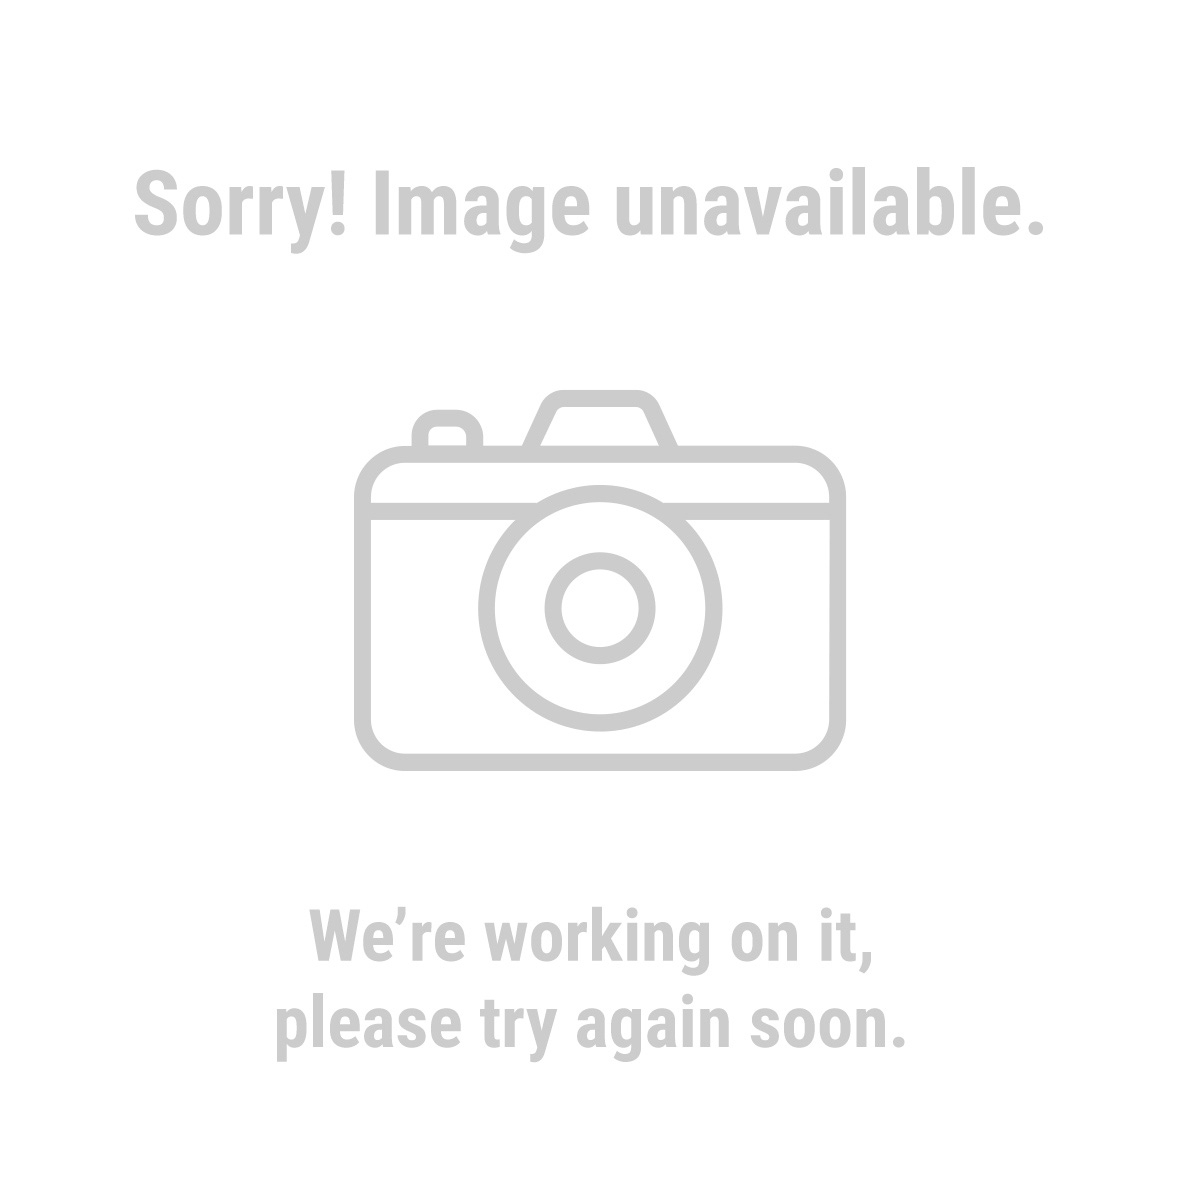 U.S. General® 47844 Folding Clamping Workbench with Movable Pegs